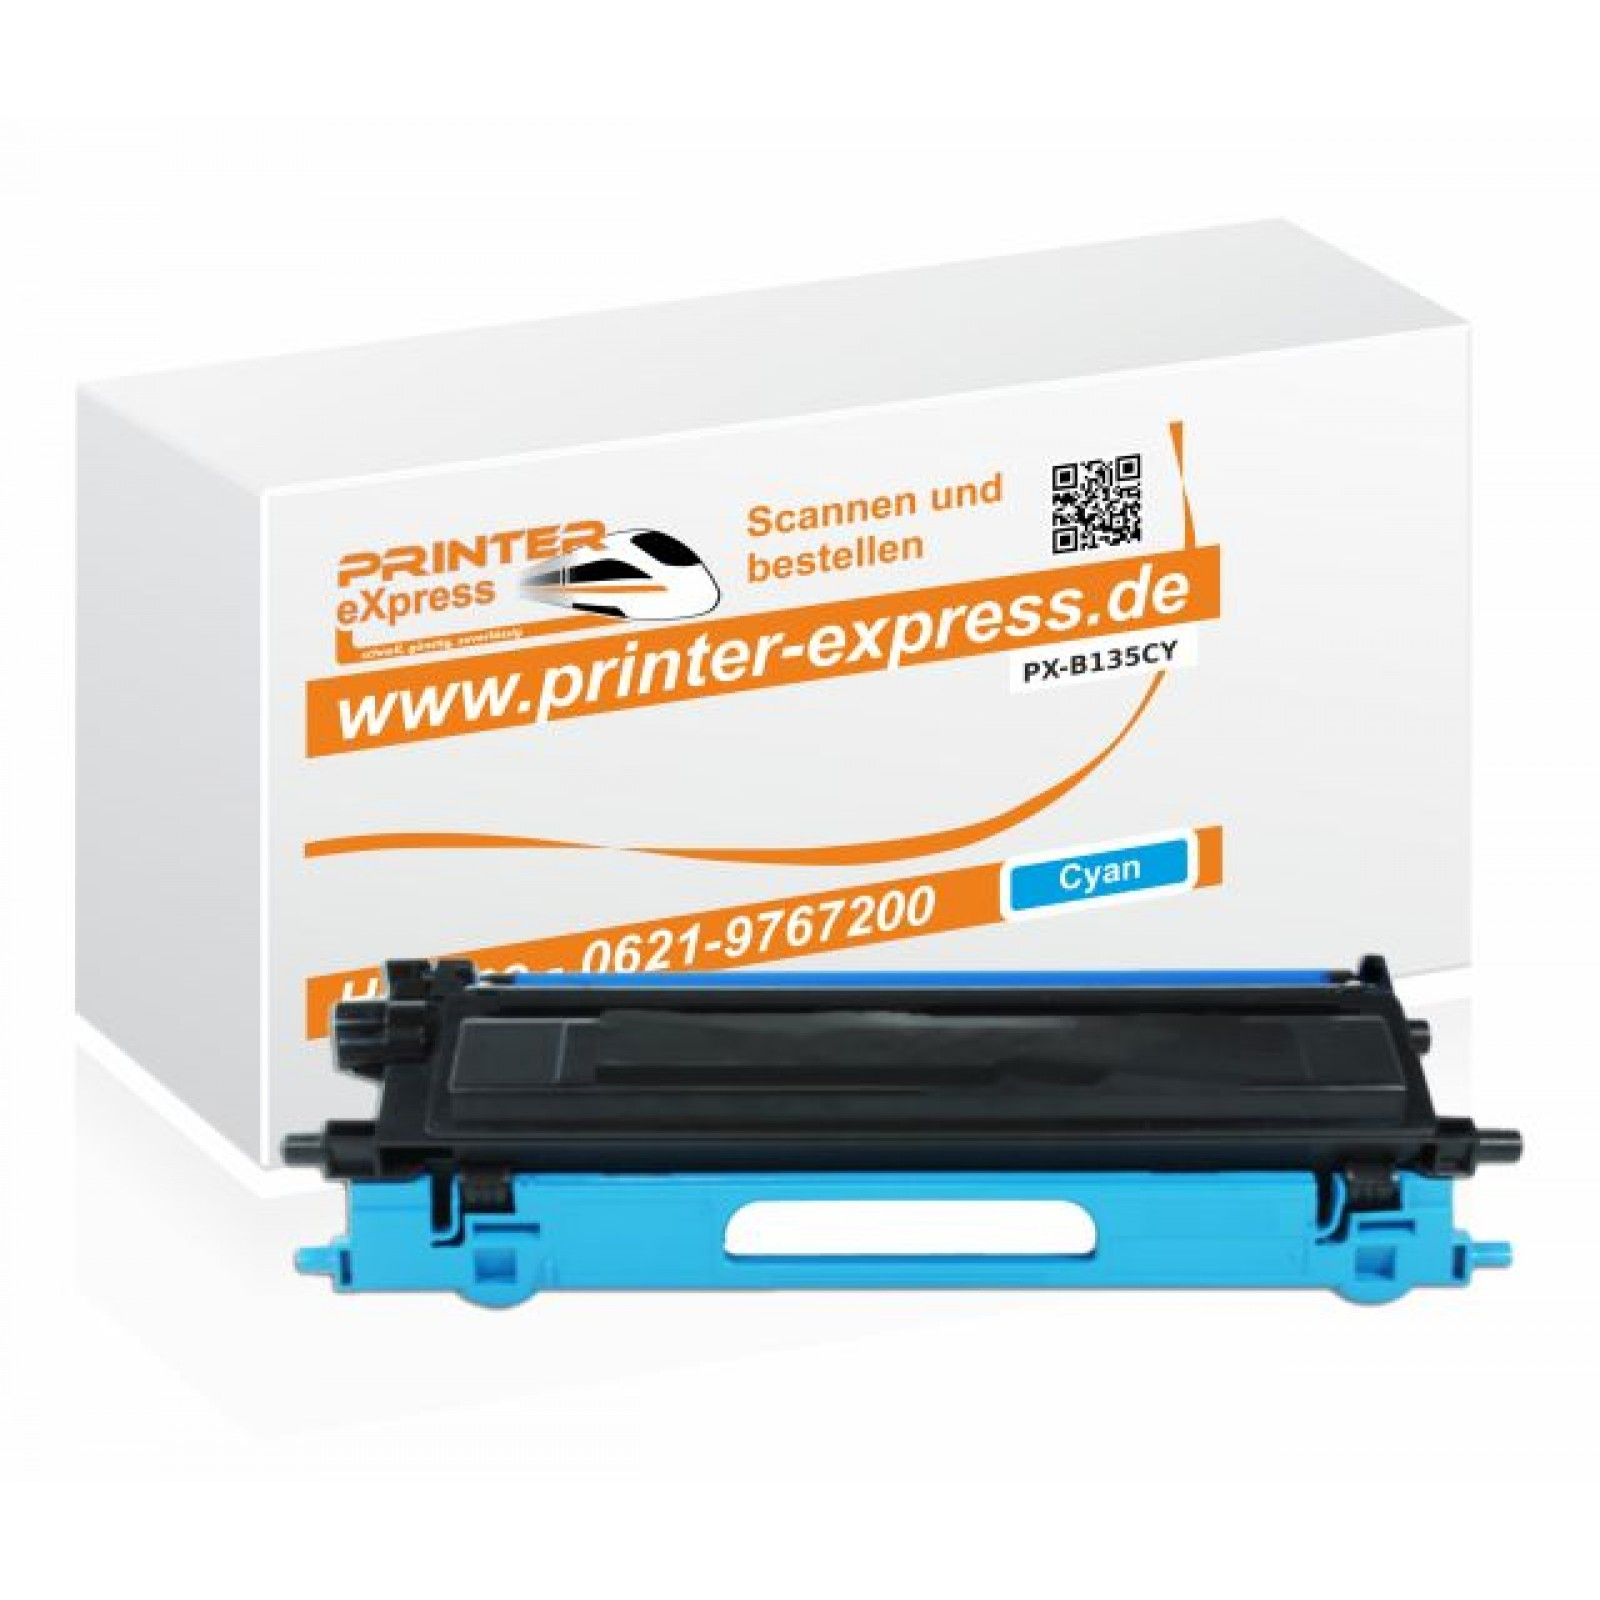 Toner alternativ zu Brother TN-135C für Brother Drucker Cyan